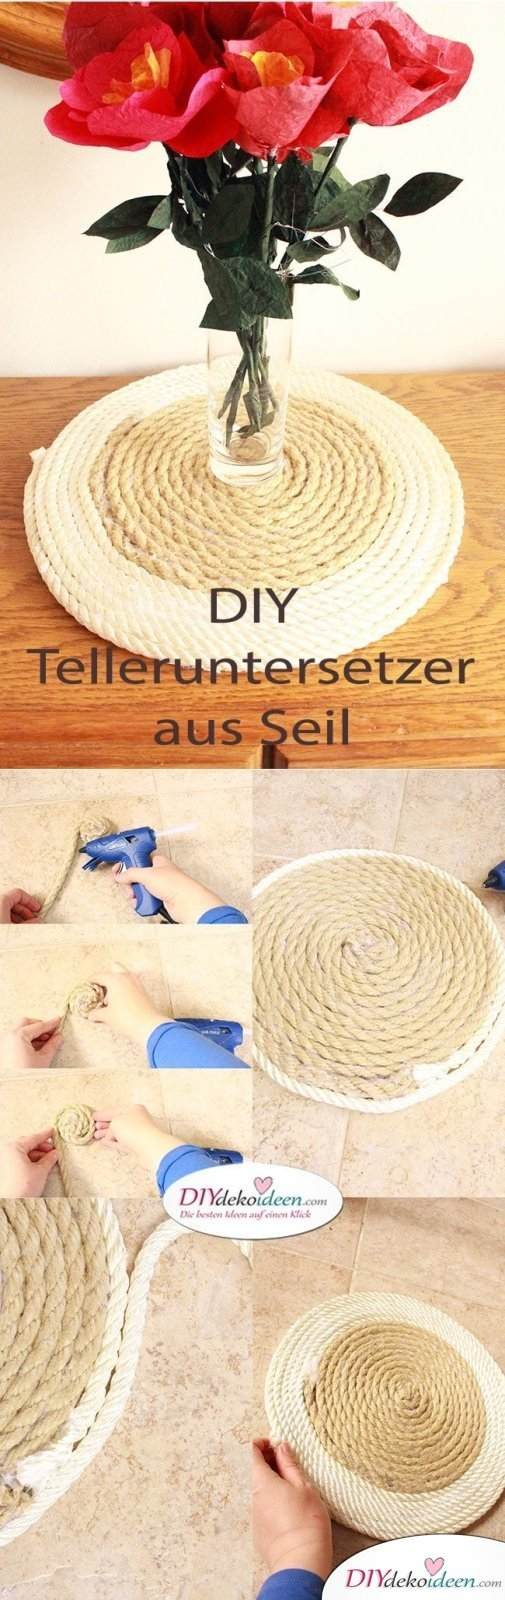 diy dekoidee telleruntersetzer mit stil platzdeckchen selber machen. Black Bedroom Furniture Sets. Home Design Ideas